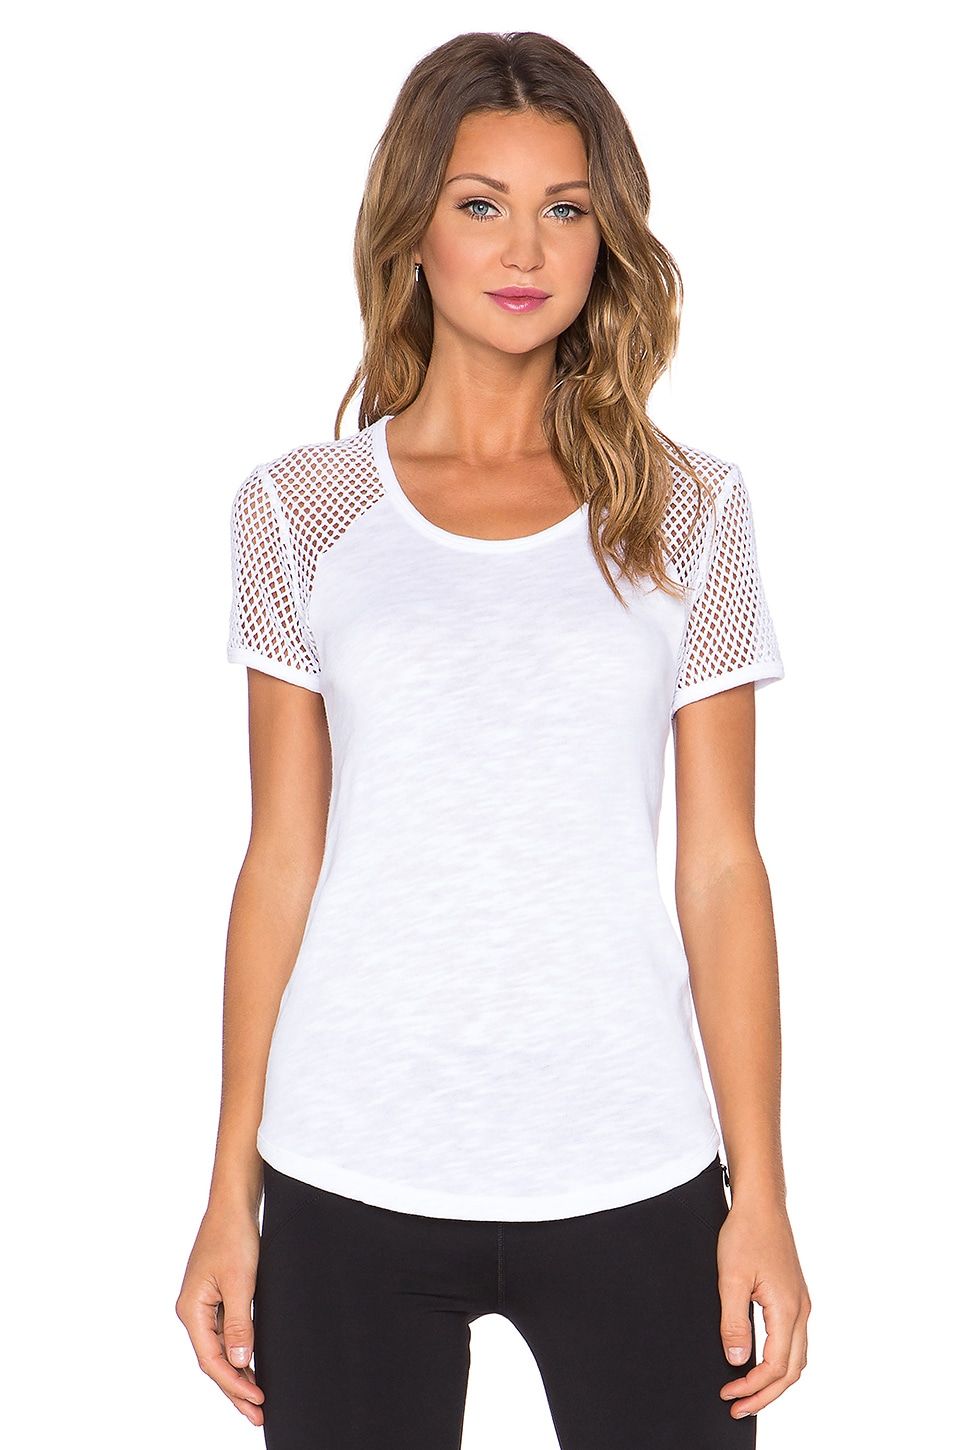 Lorna Jane Revolution Tee in White